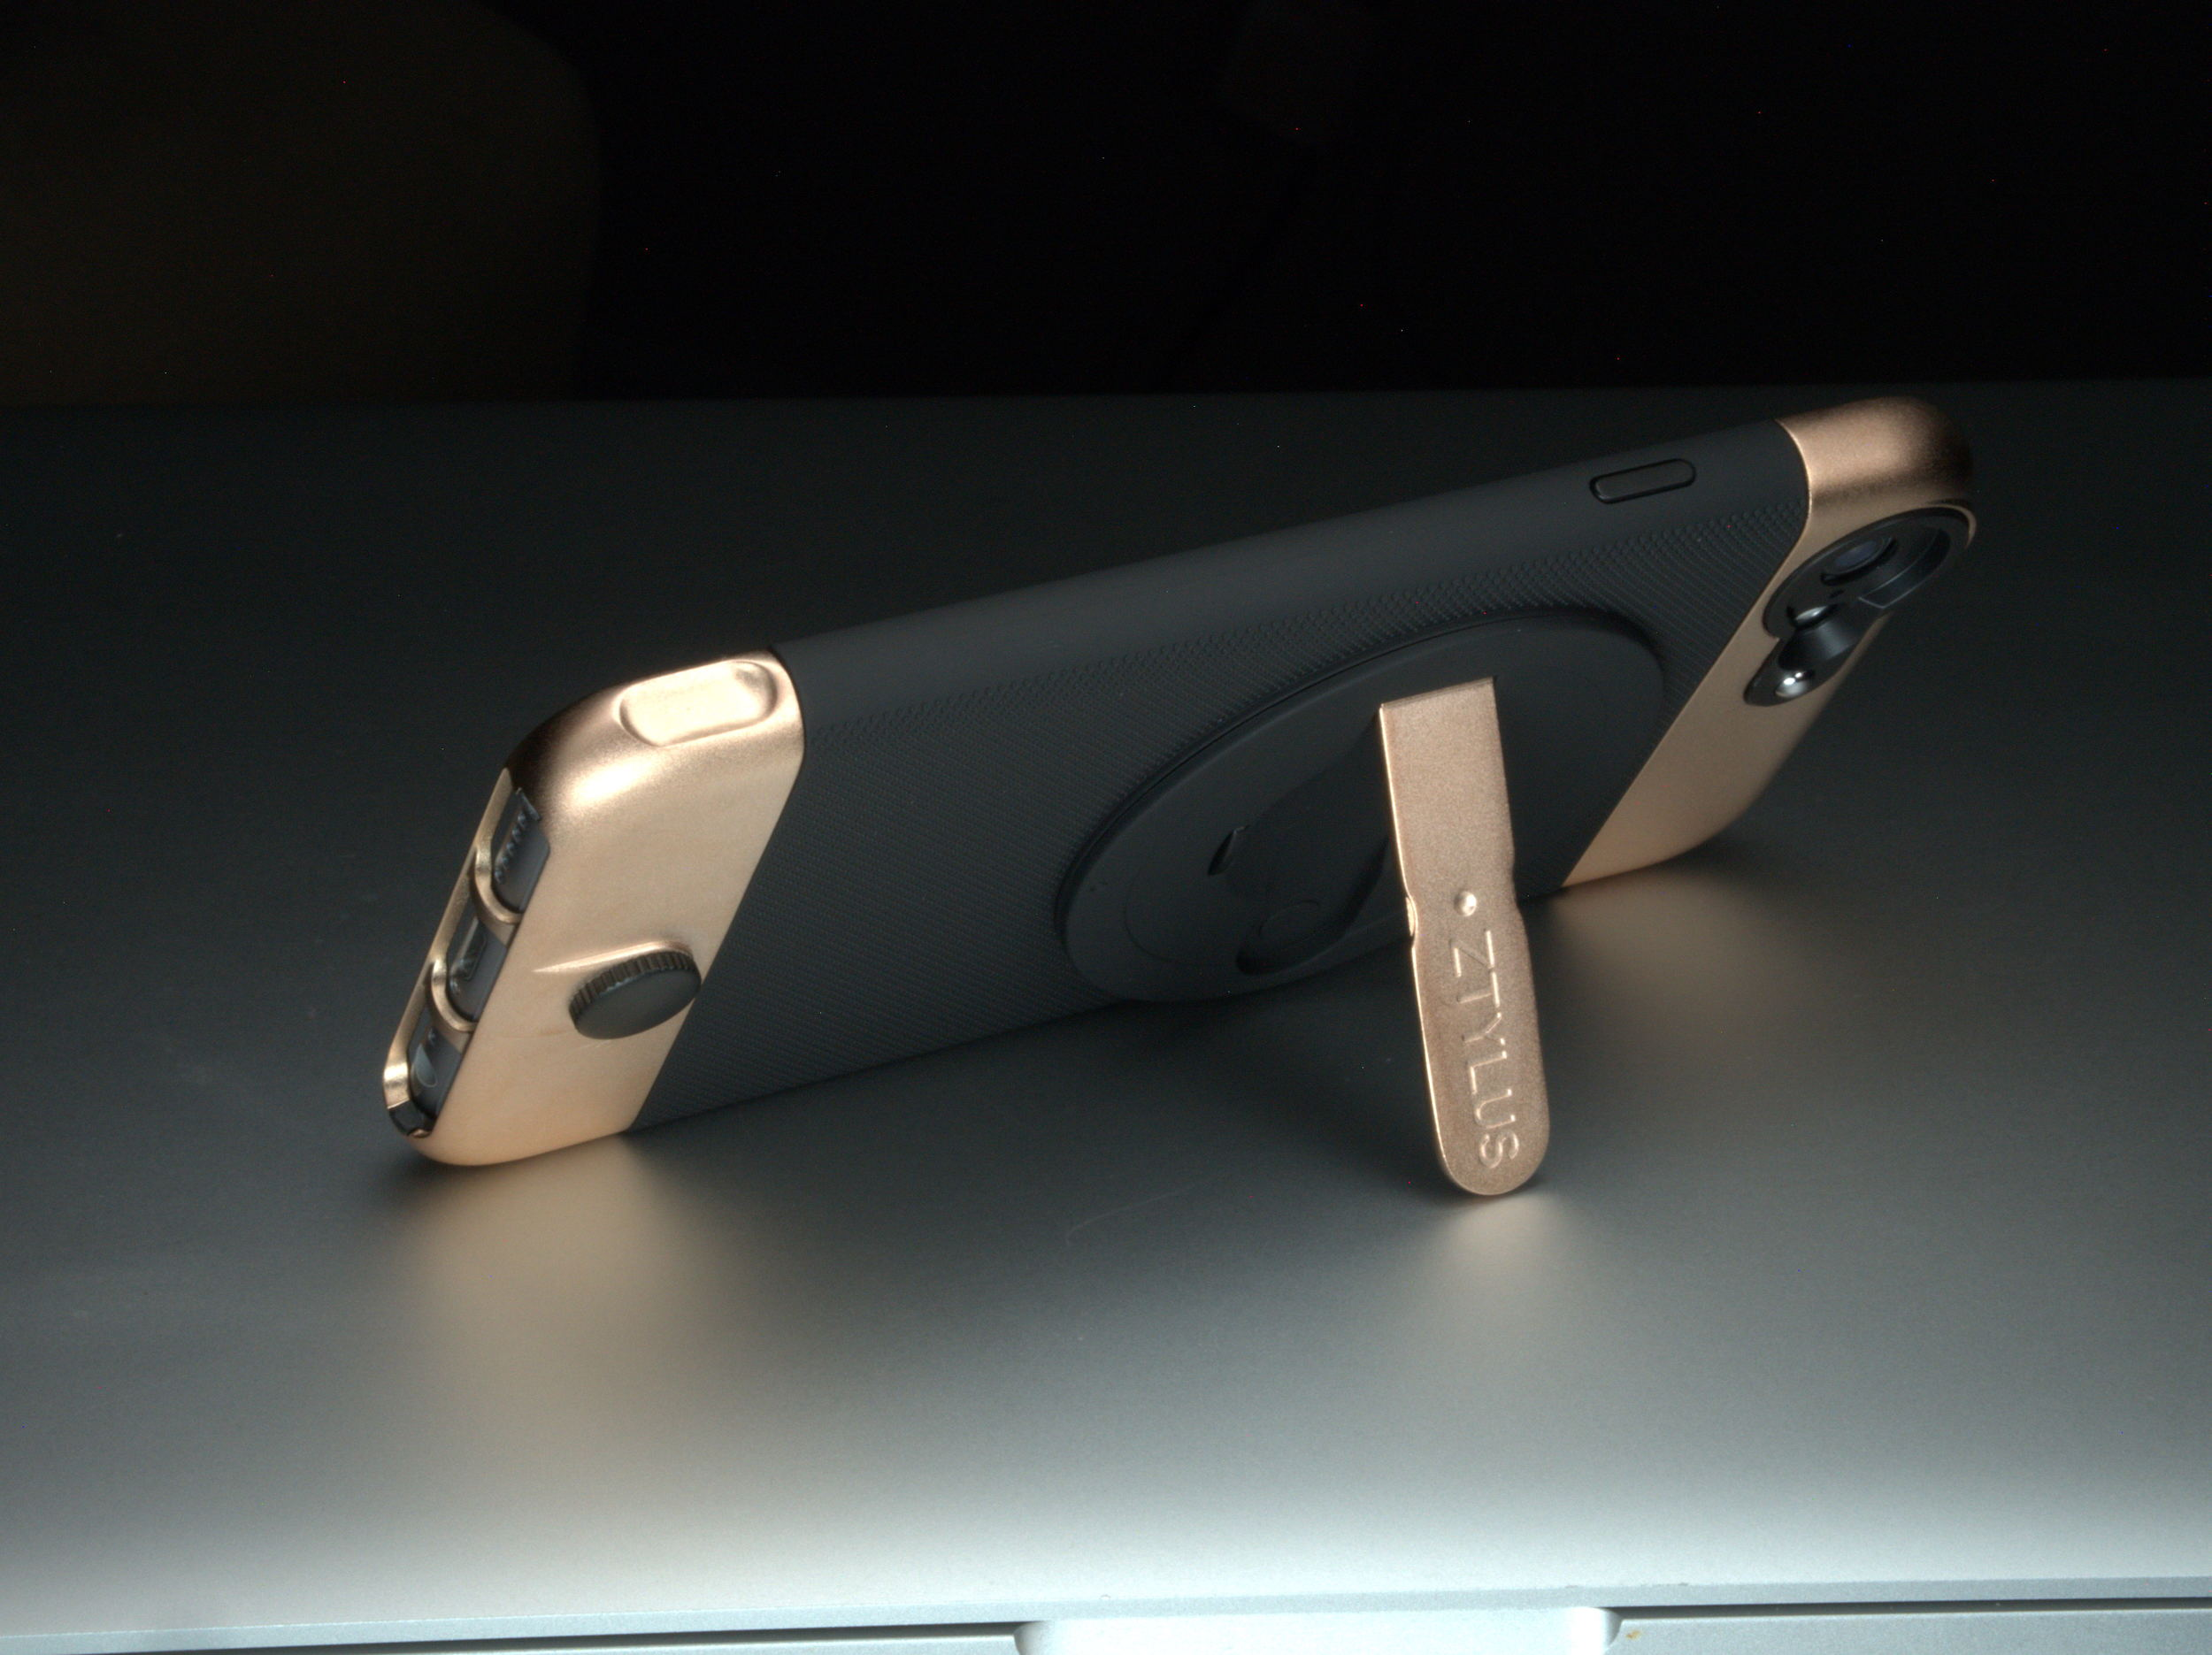 ZTYLUS Rose Gold Case Kick Stand.jpg